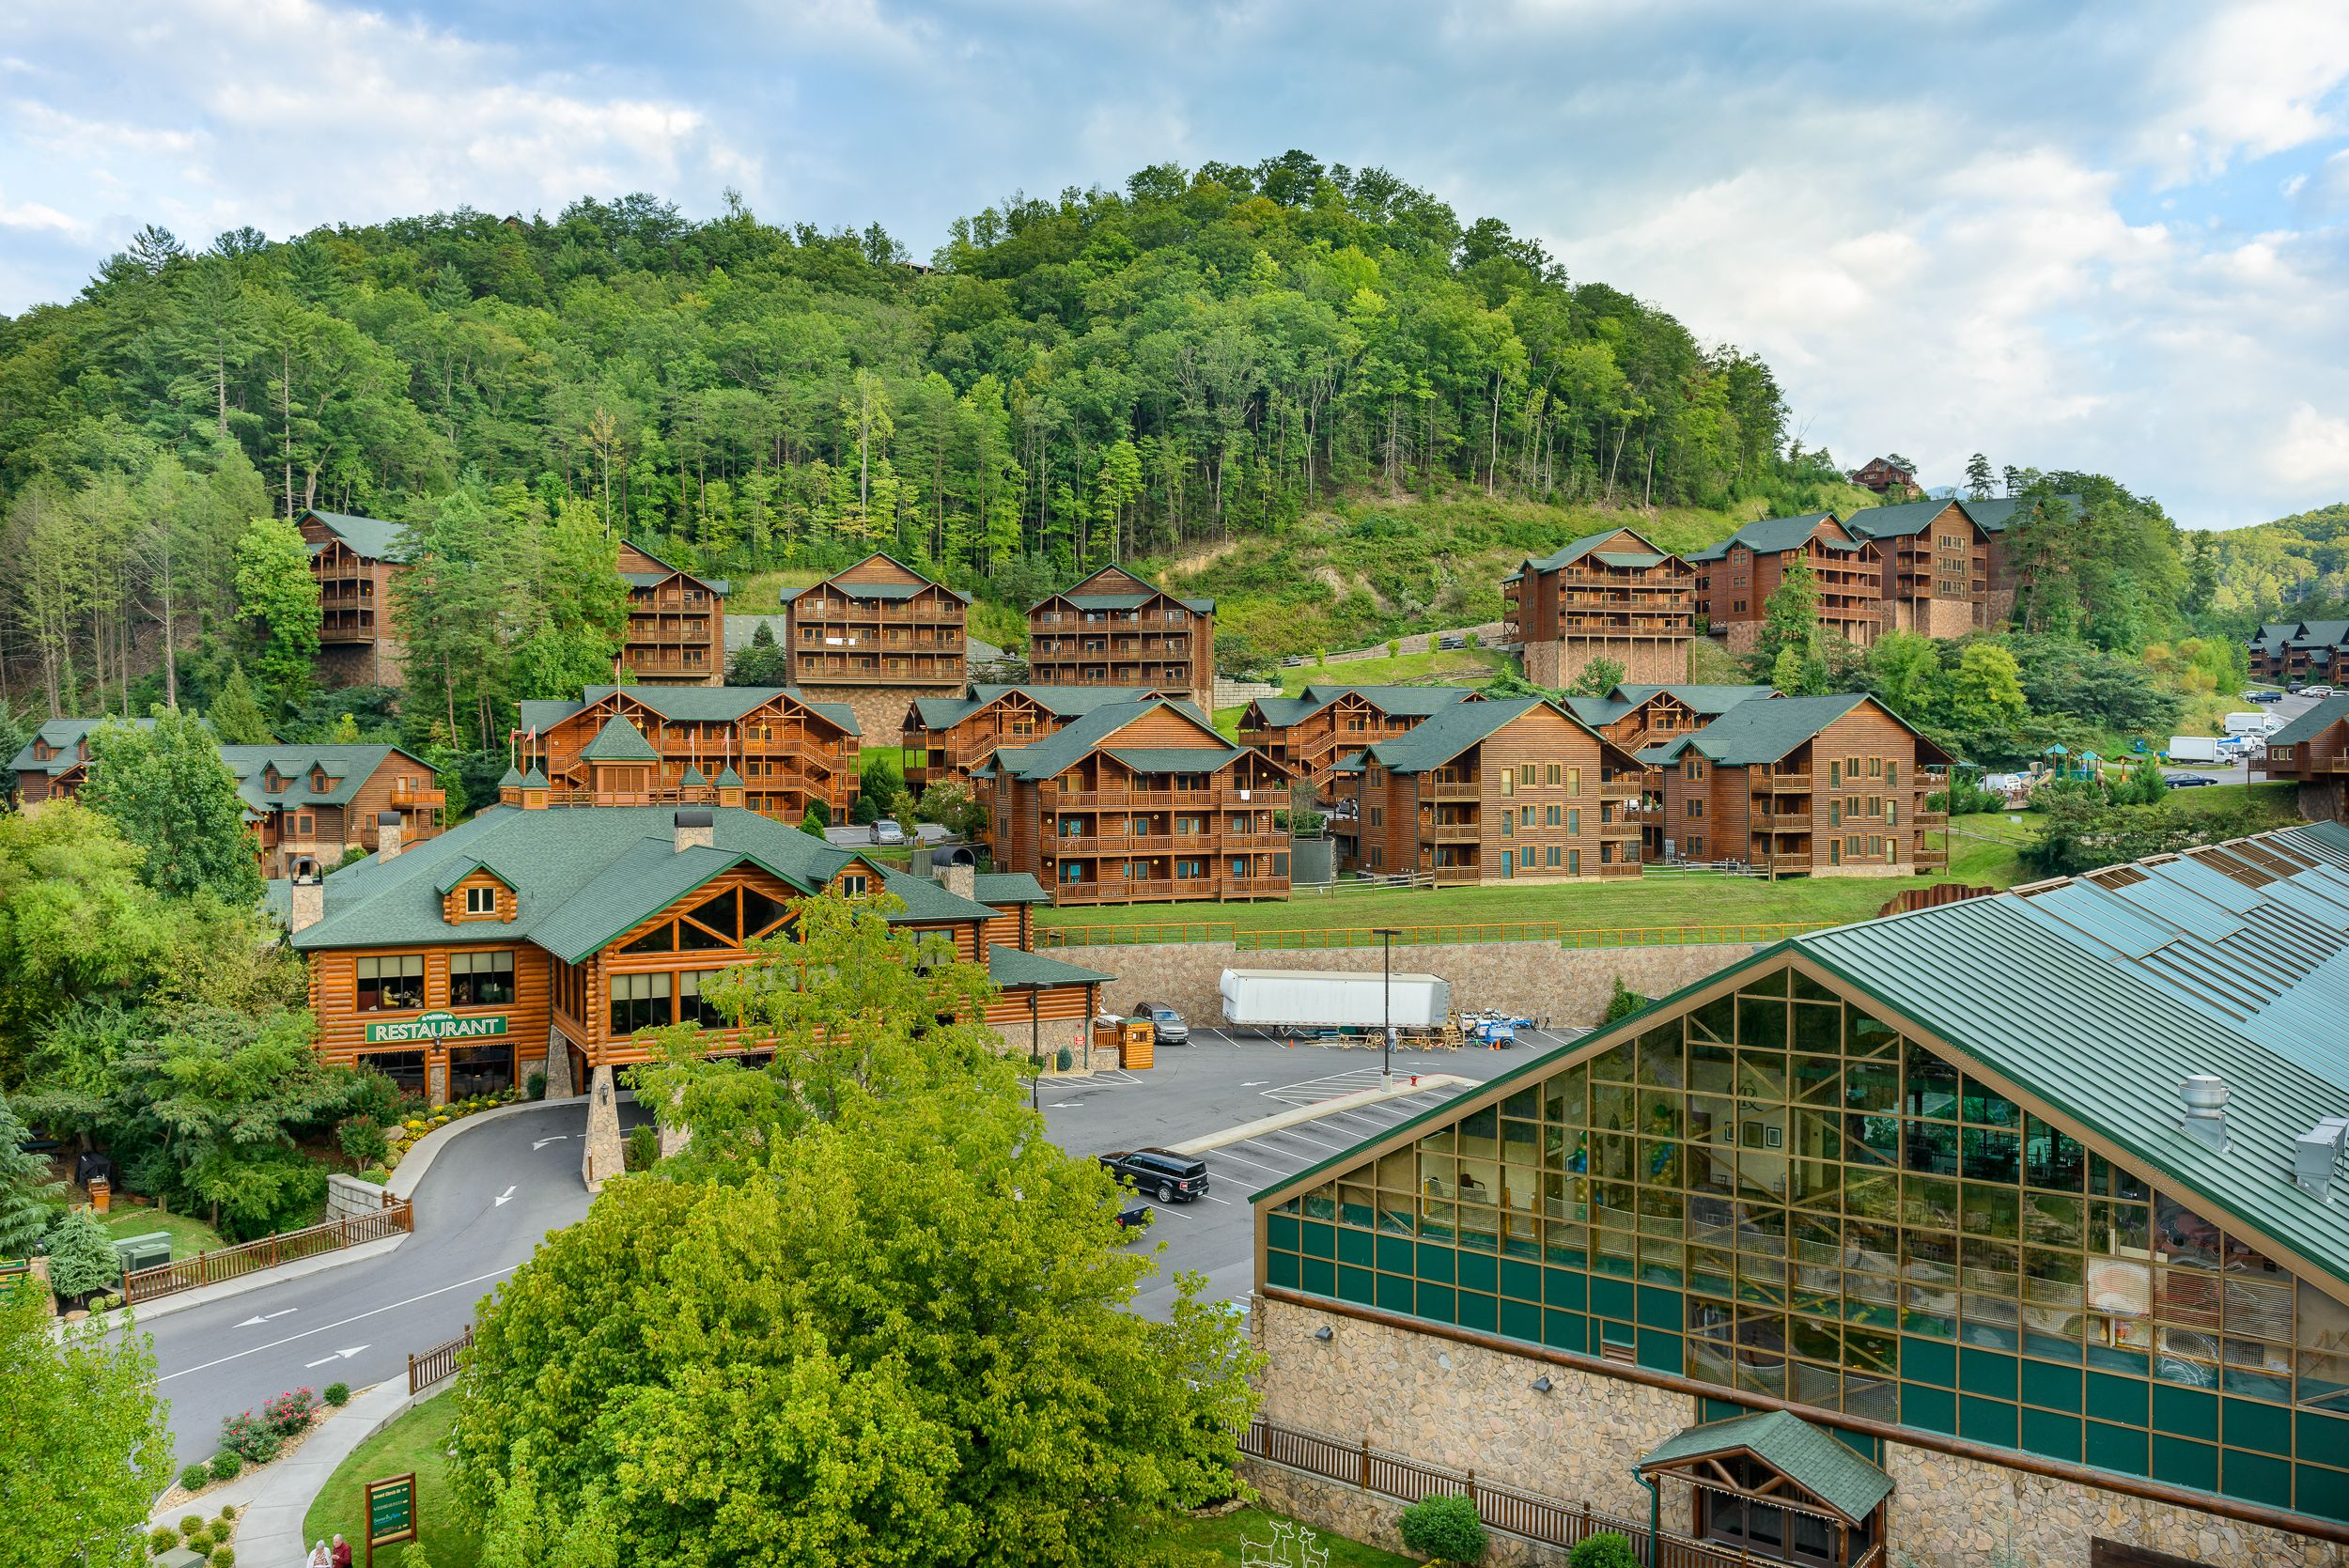 Westgate Smoky Mountain Resort and Spa in beautiful